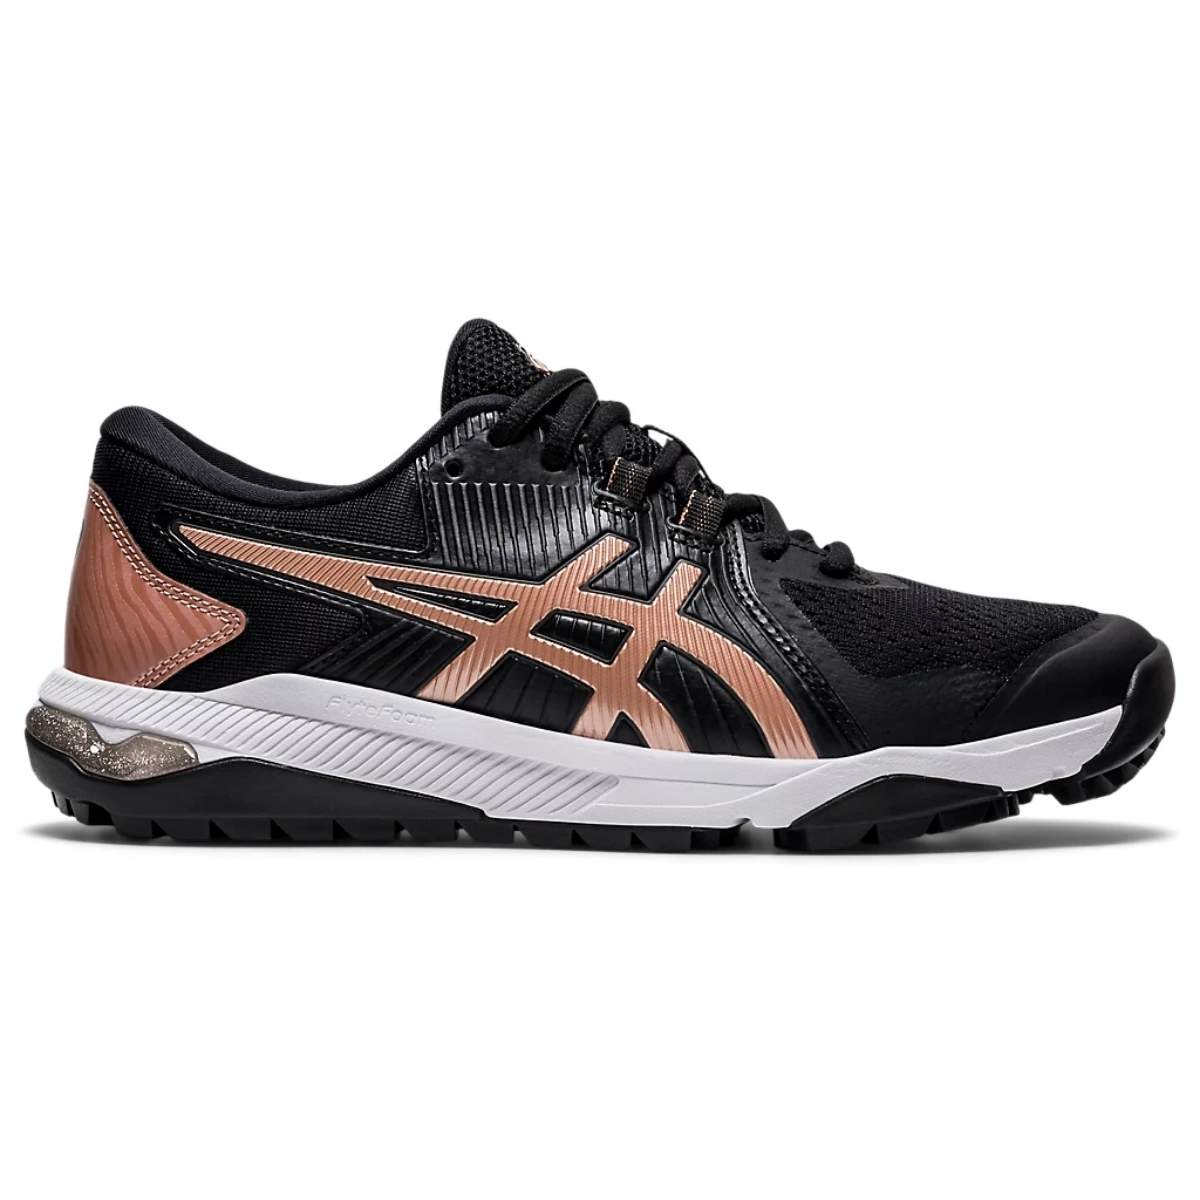 Asics Women's Gel Glide Golf Shoe - Black/Briar Rose